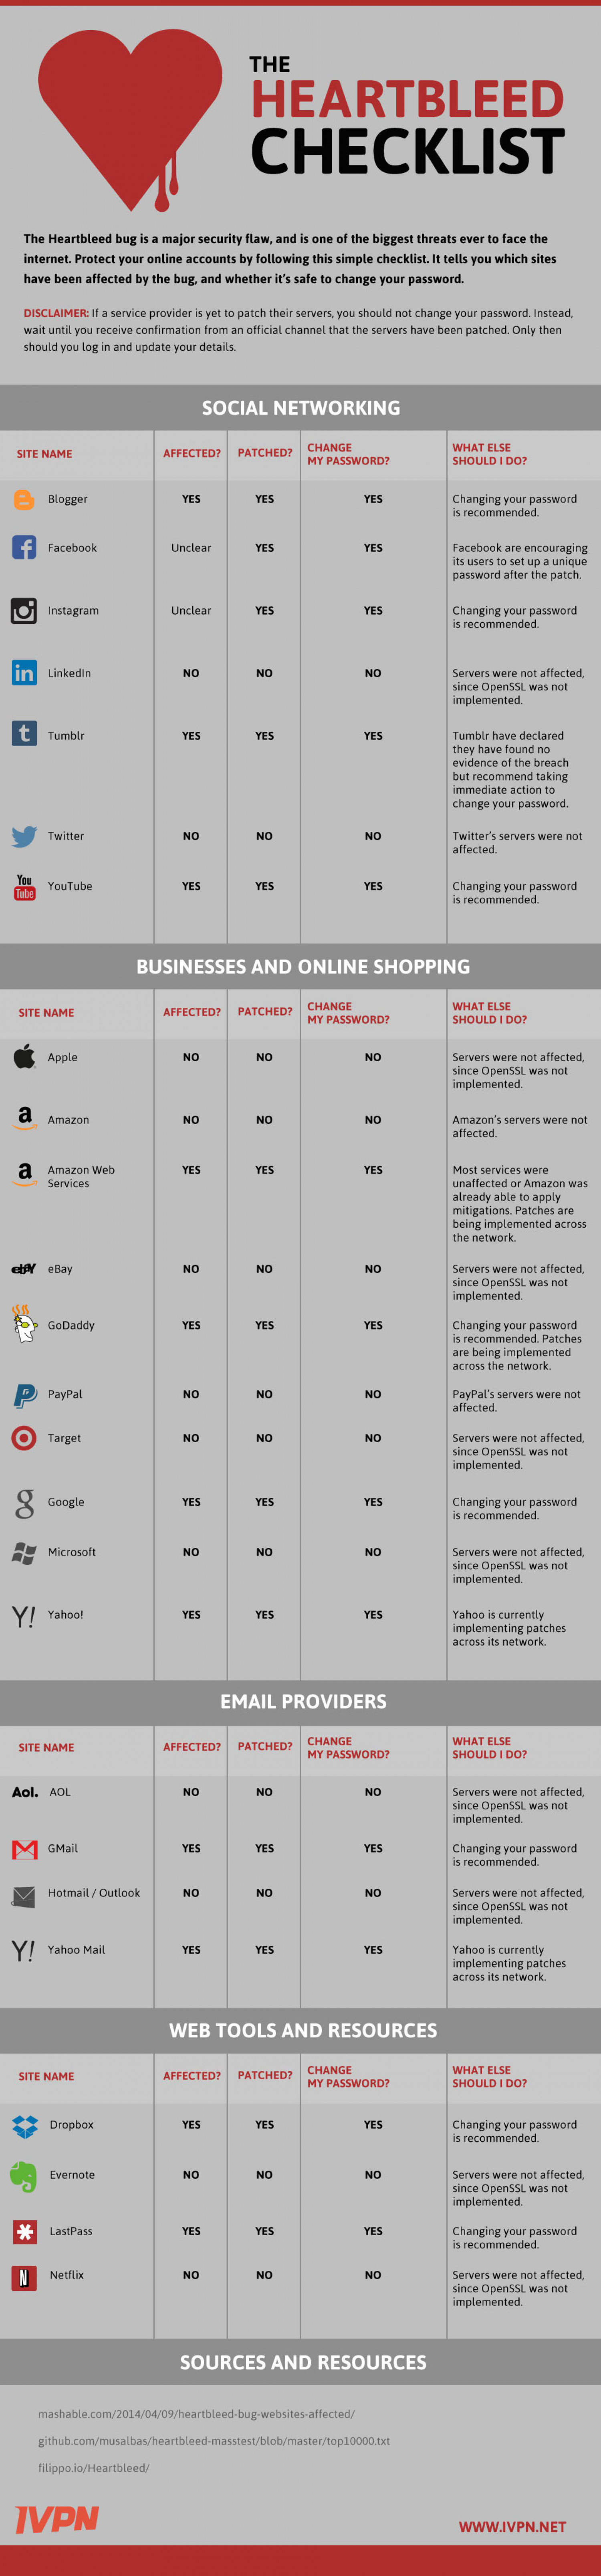 The Heartbleed Checklist Infographic